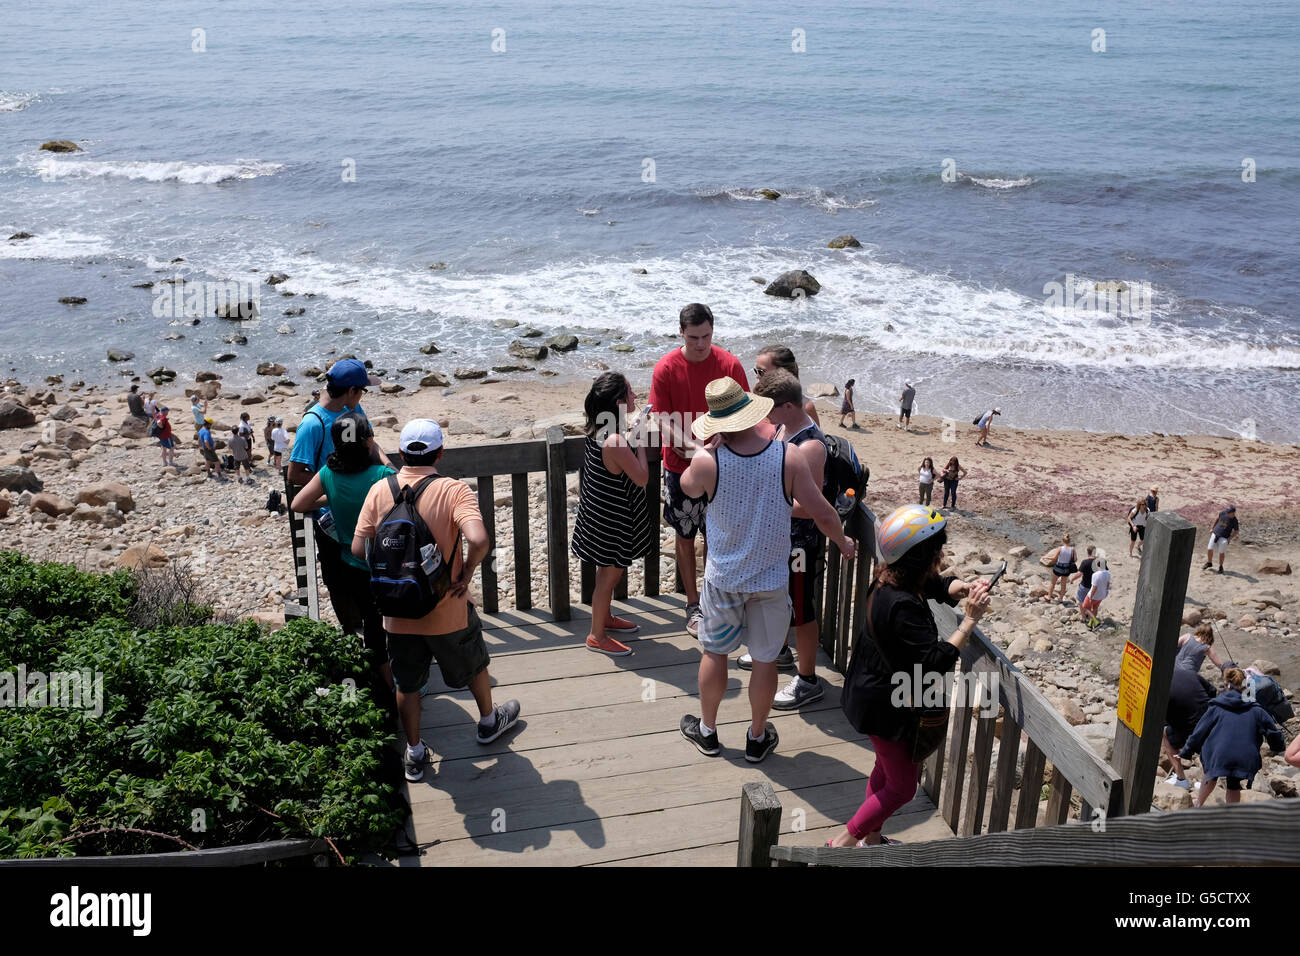 Tourists at the beach near Mohegan's Bluffs, Block Island, Rhode Island - Stock Image